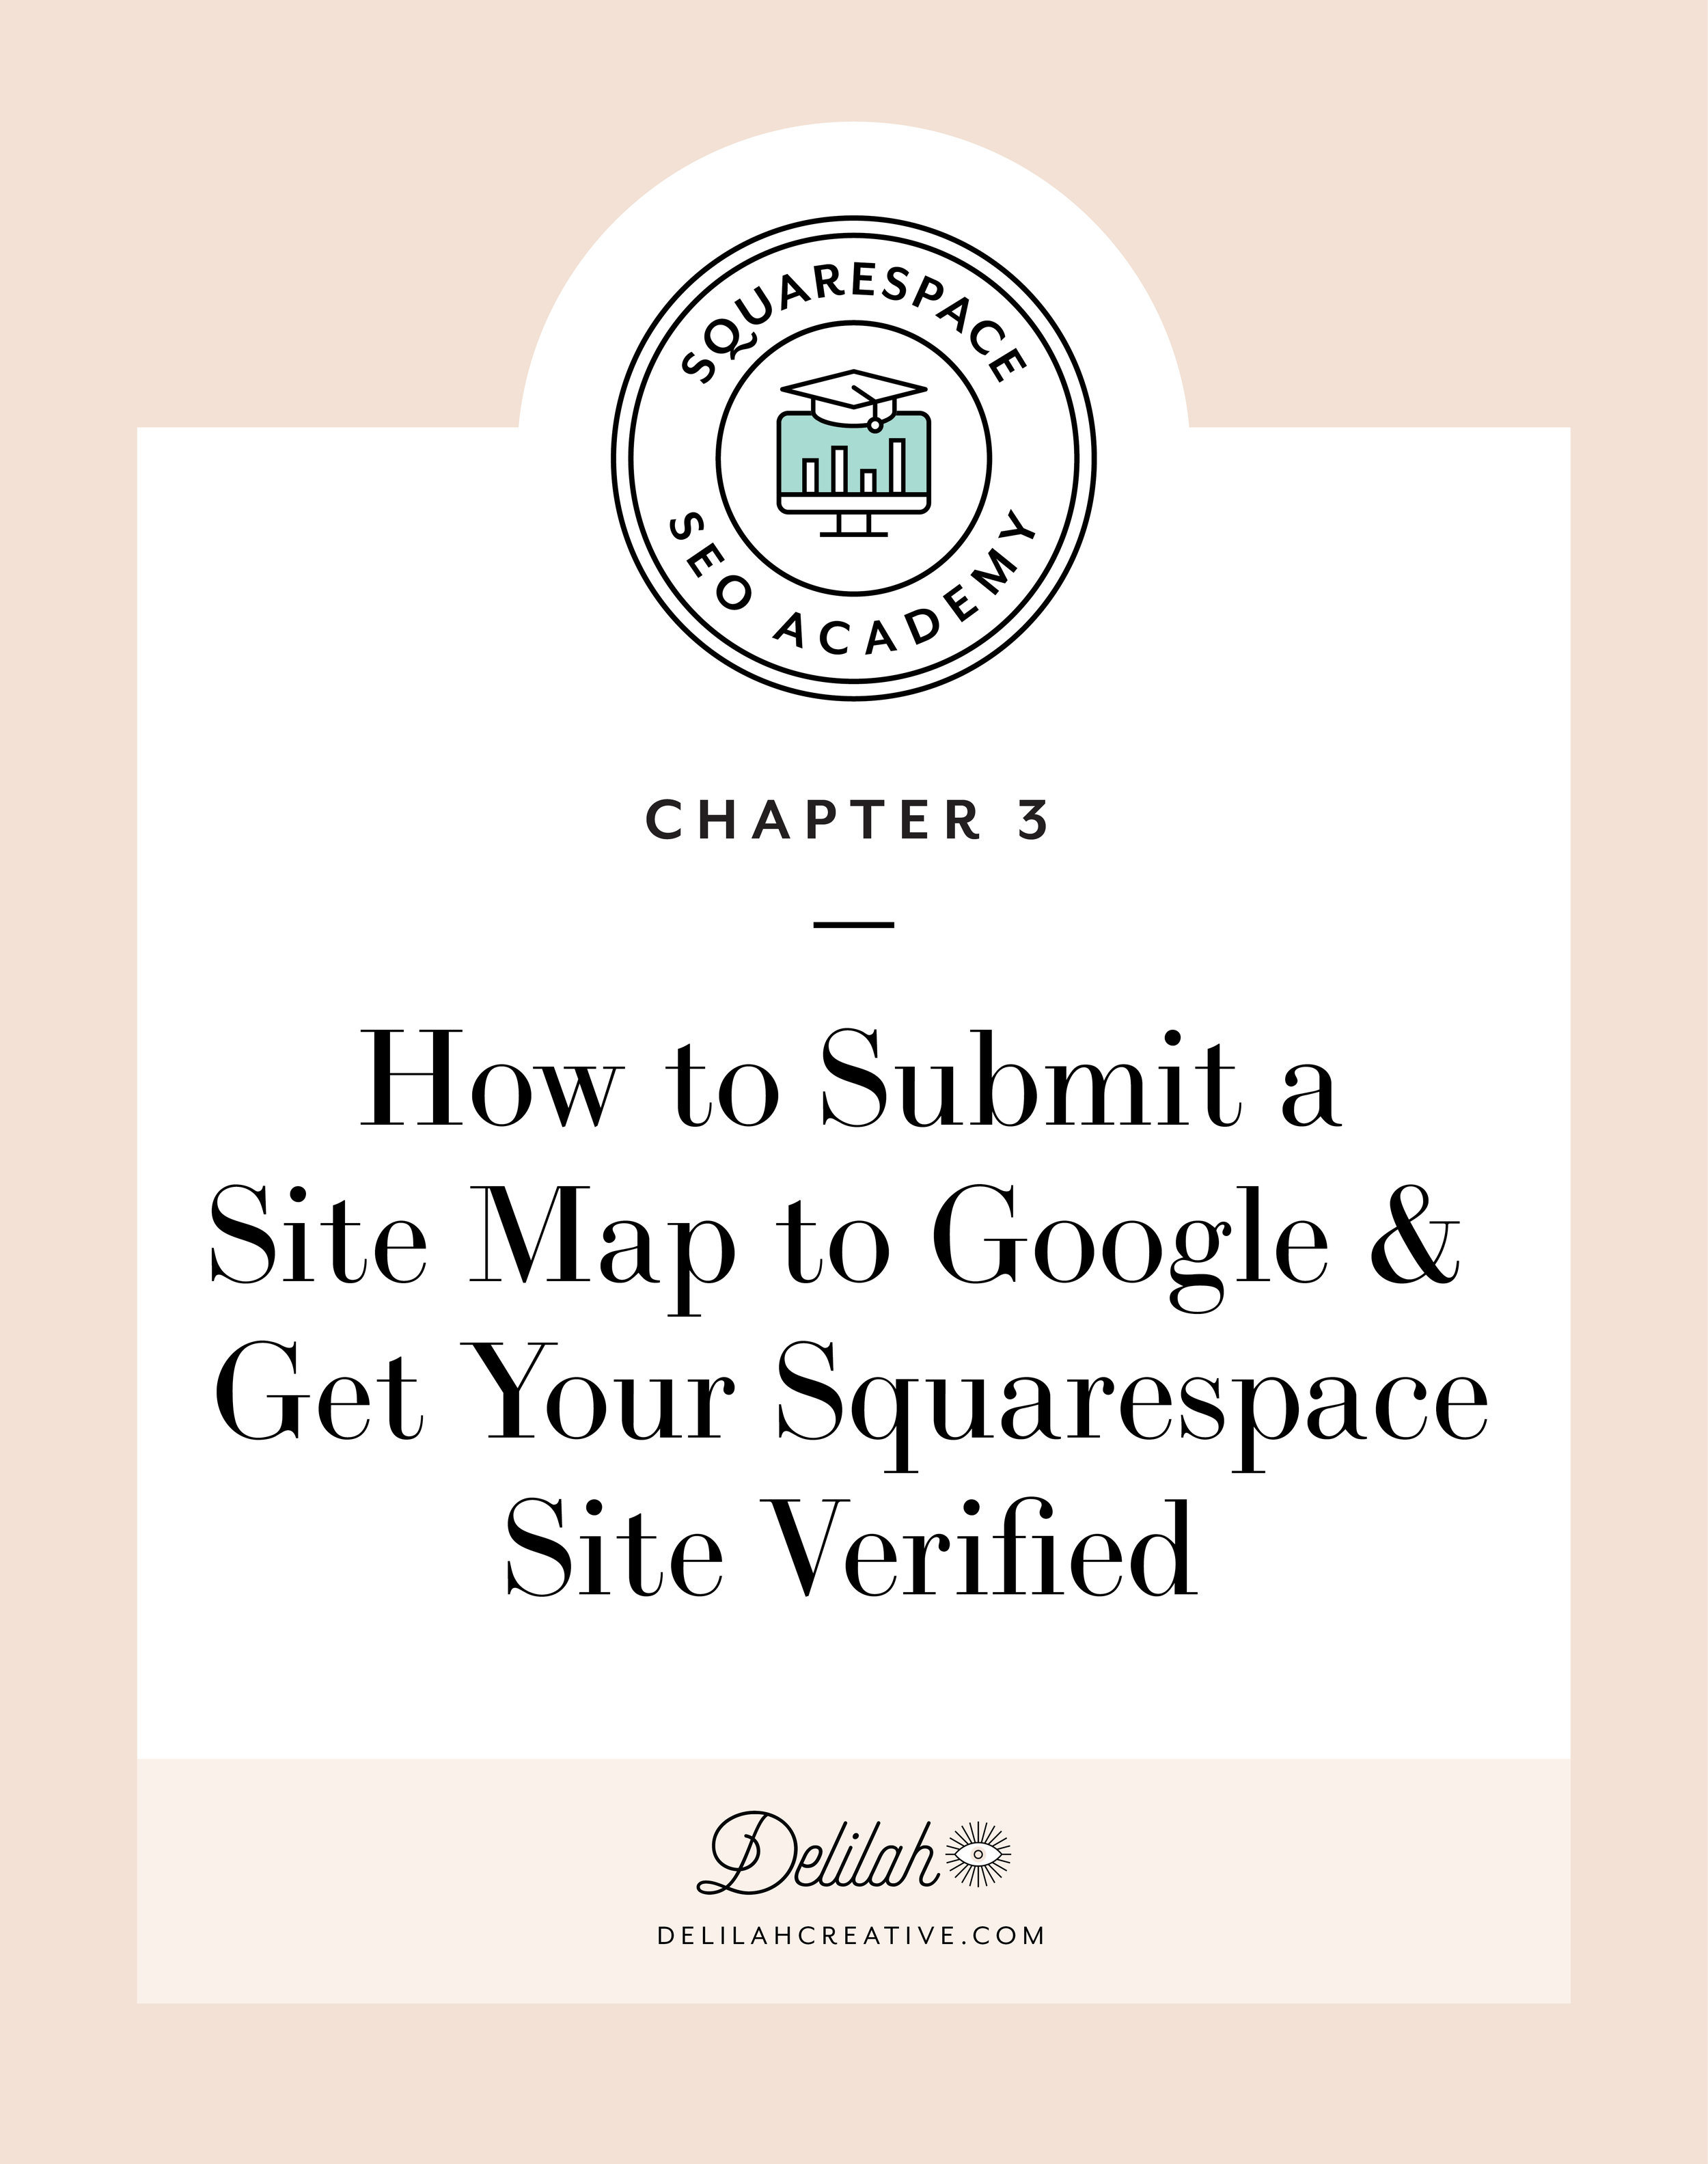 SEO-squarespace-academy-how-to-submit-a-site-map-to-google